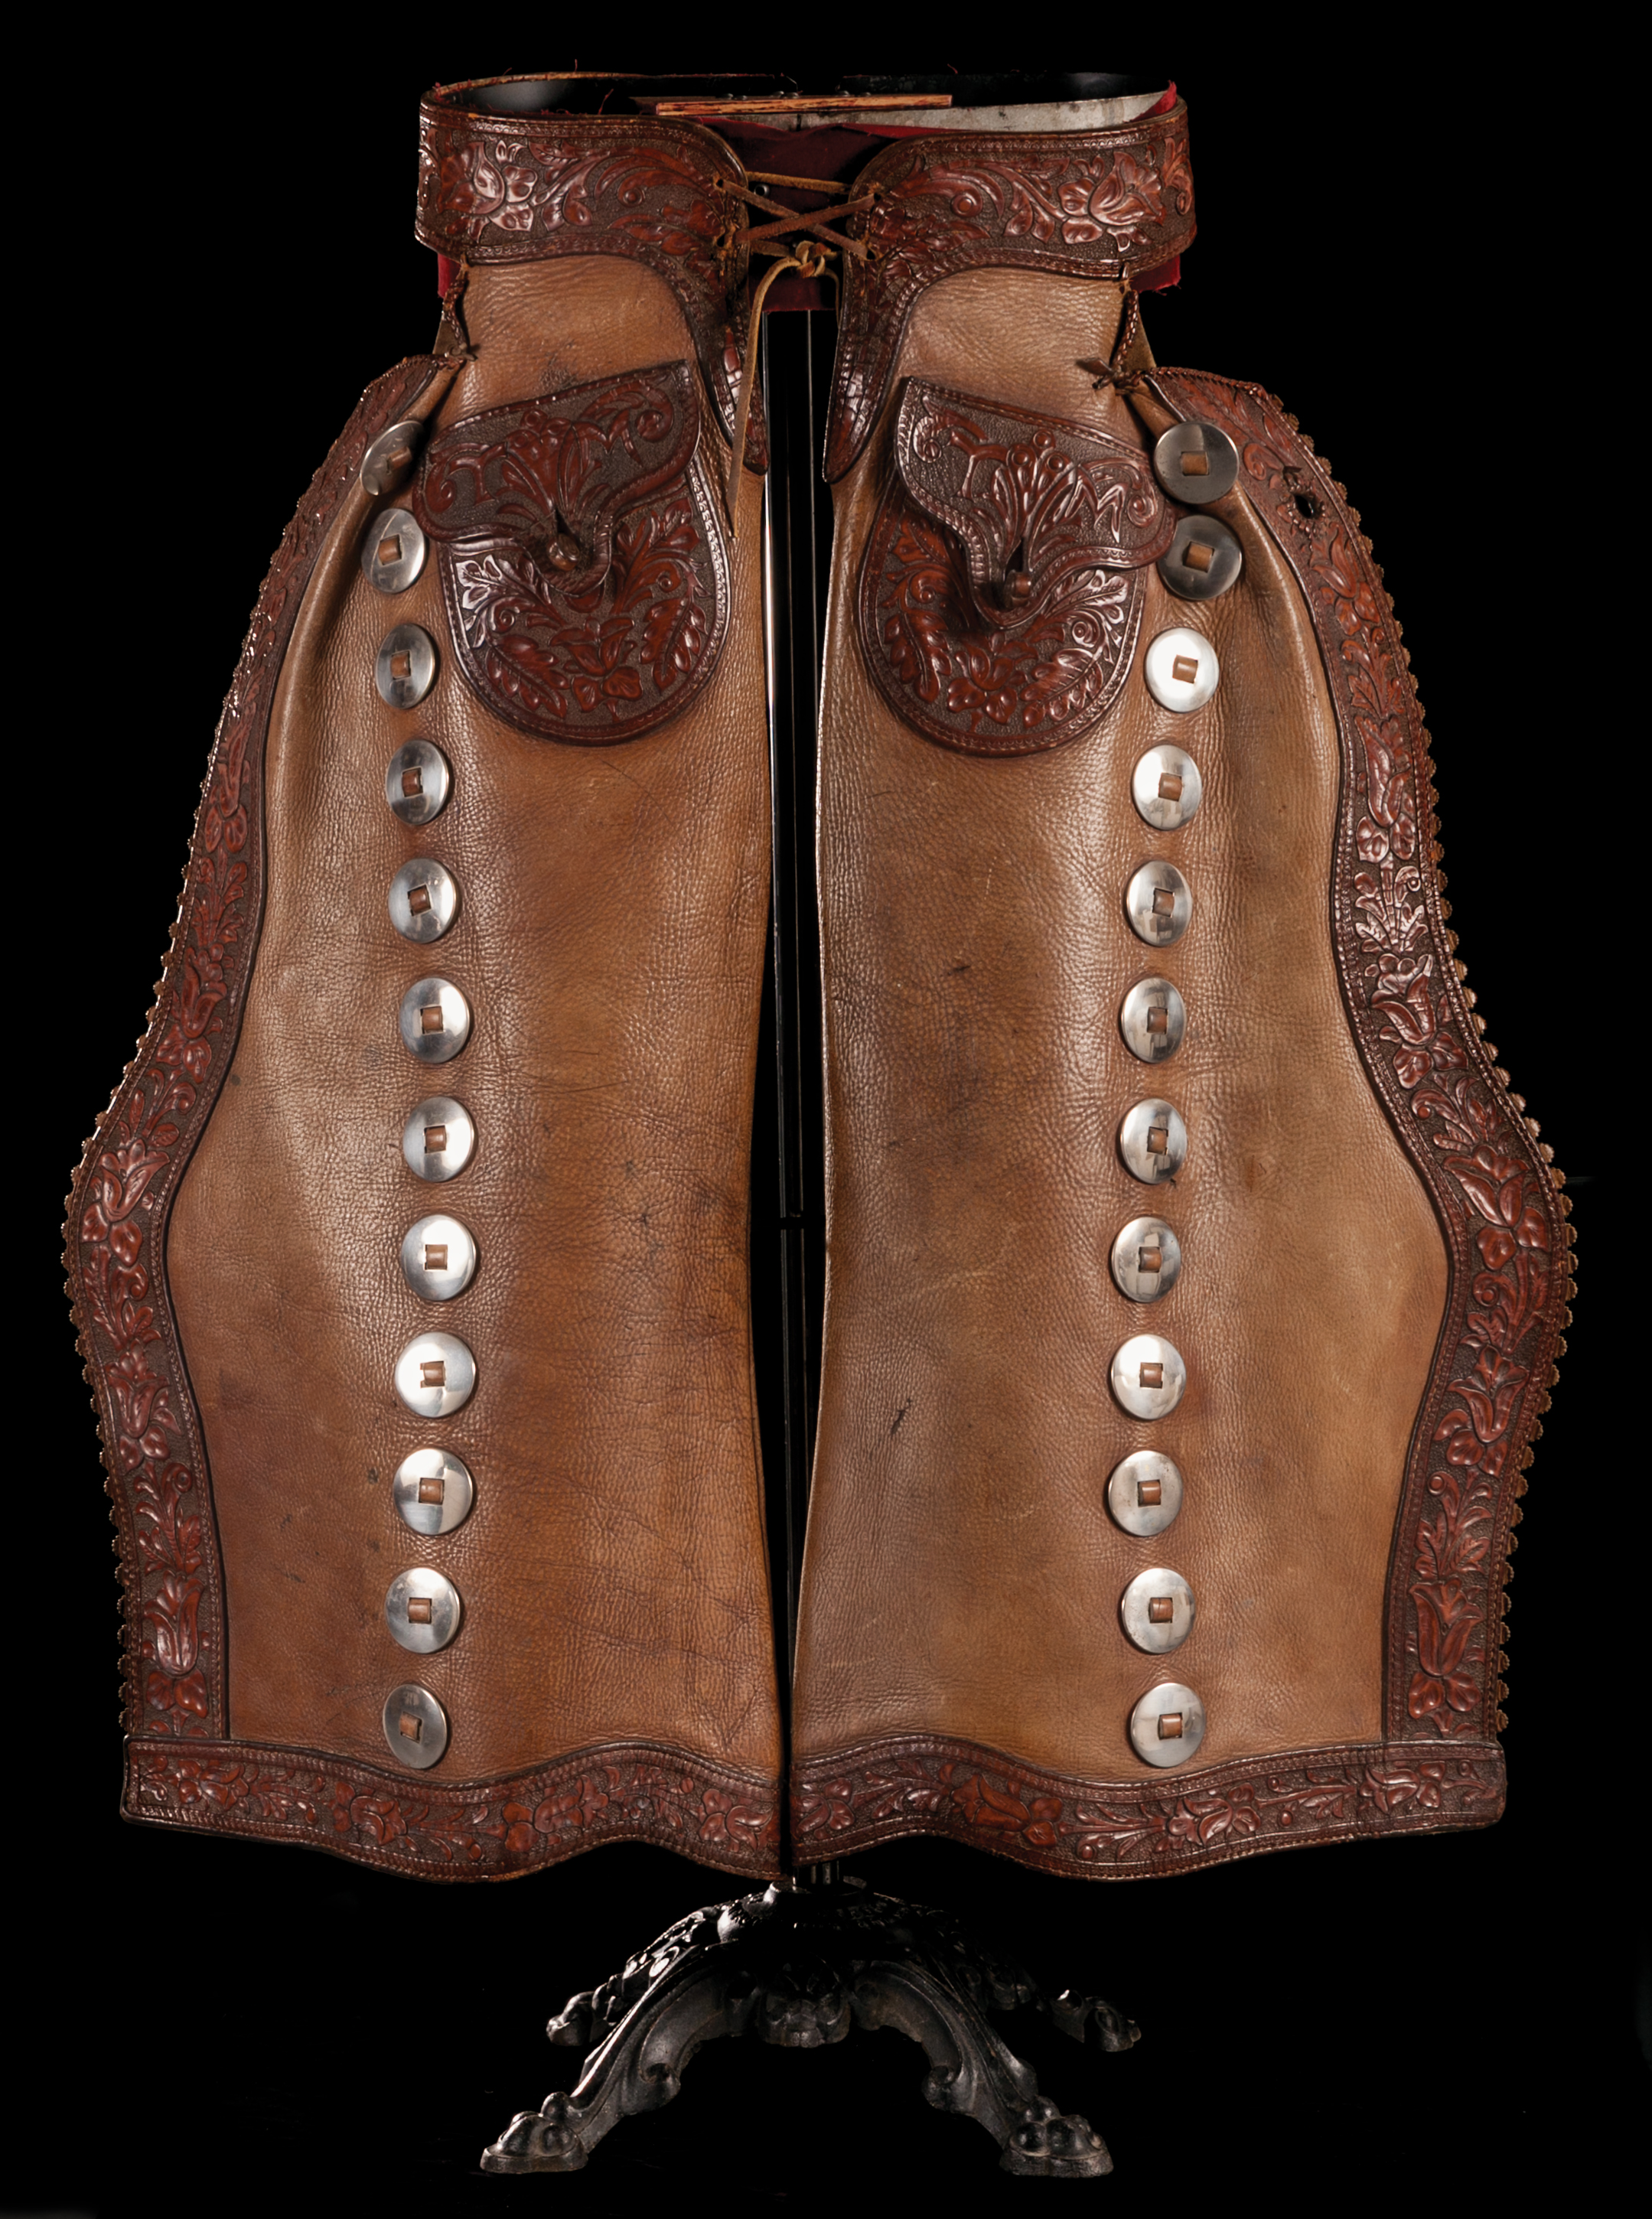 Lot 49: Tom Mix's Personal Batwing Chaps.   Brian Lebel's Mesa Auction - January 21, 2017 Sold $19,550